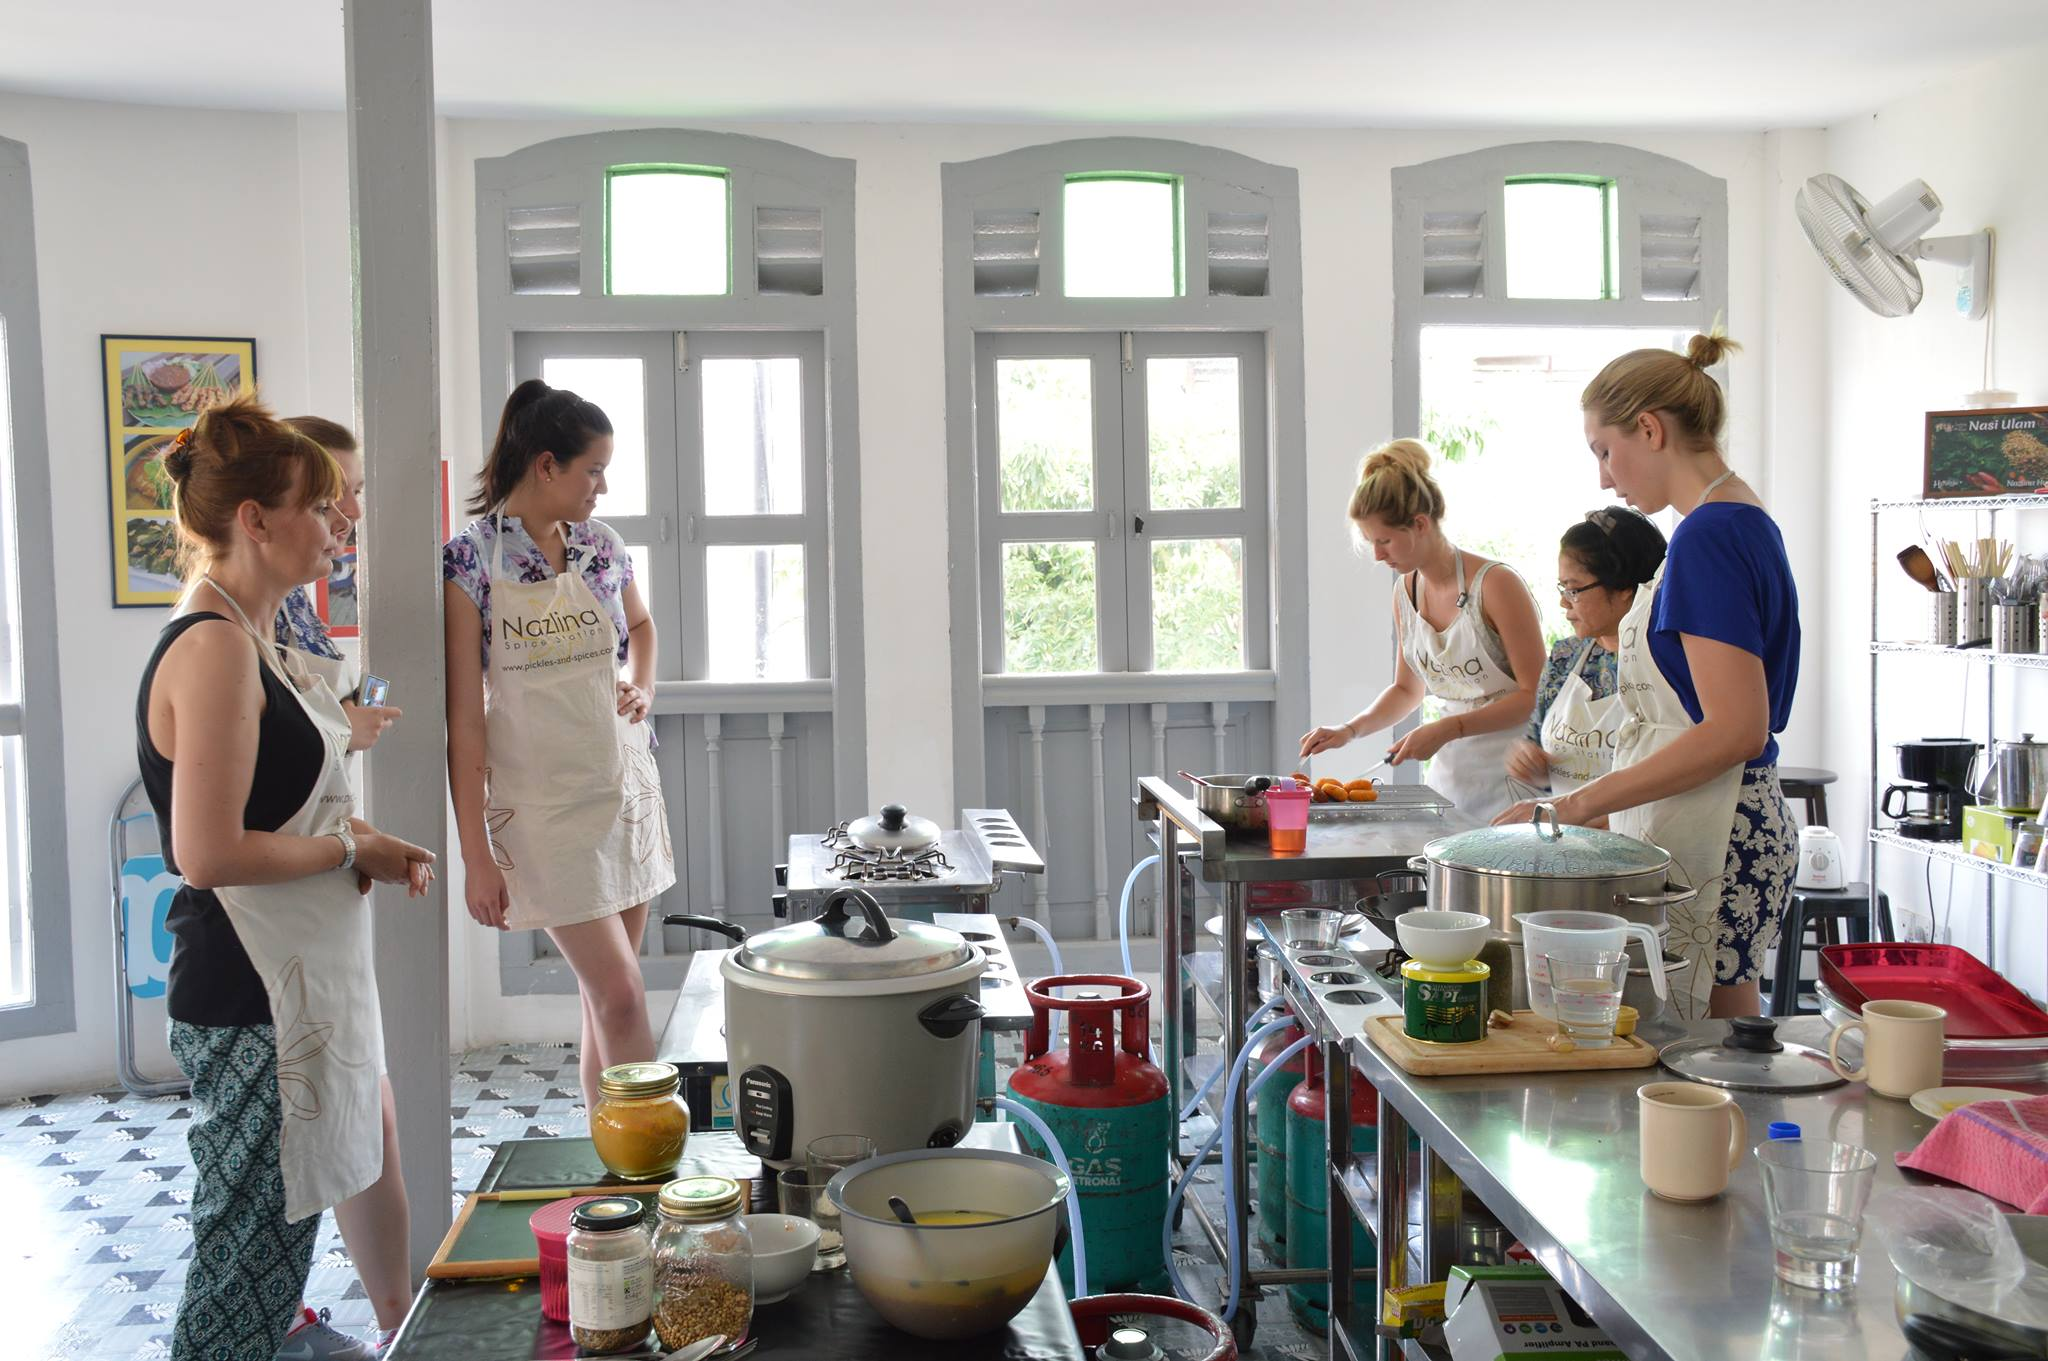 My students in the cooking class